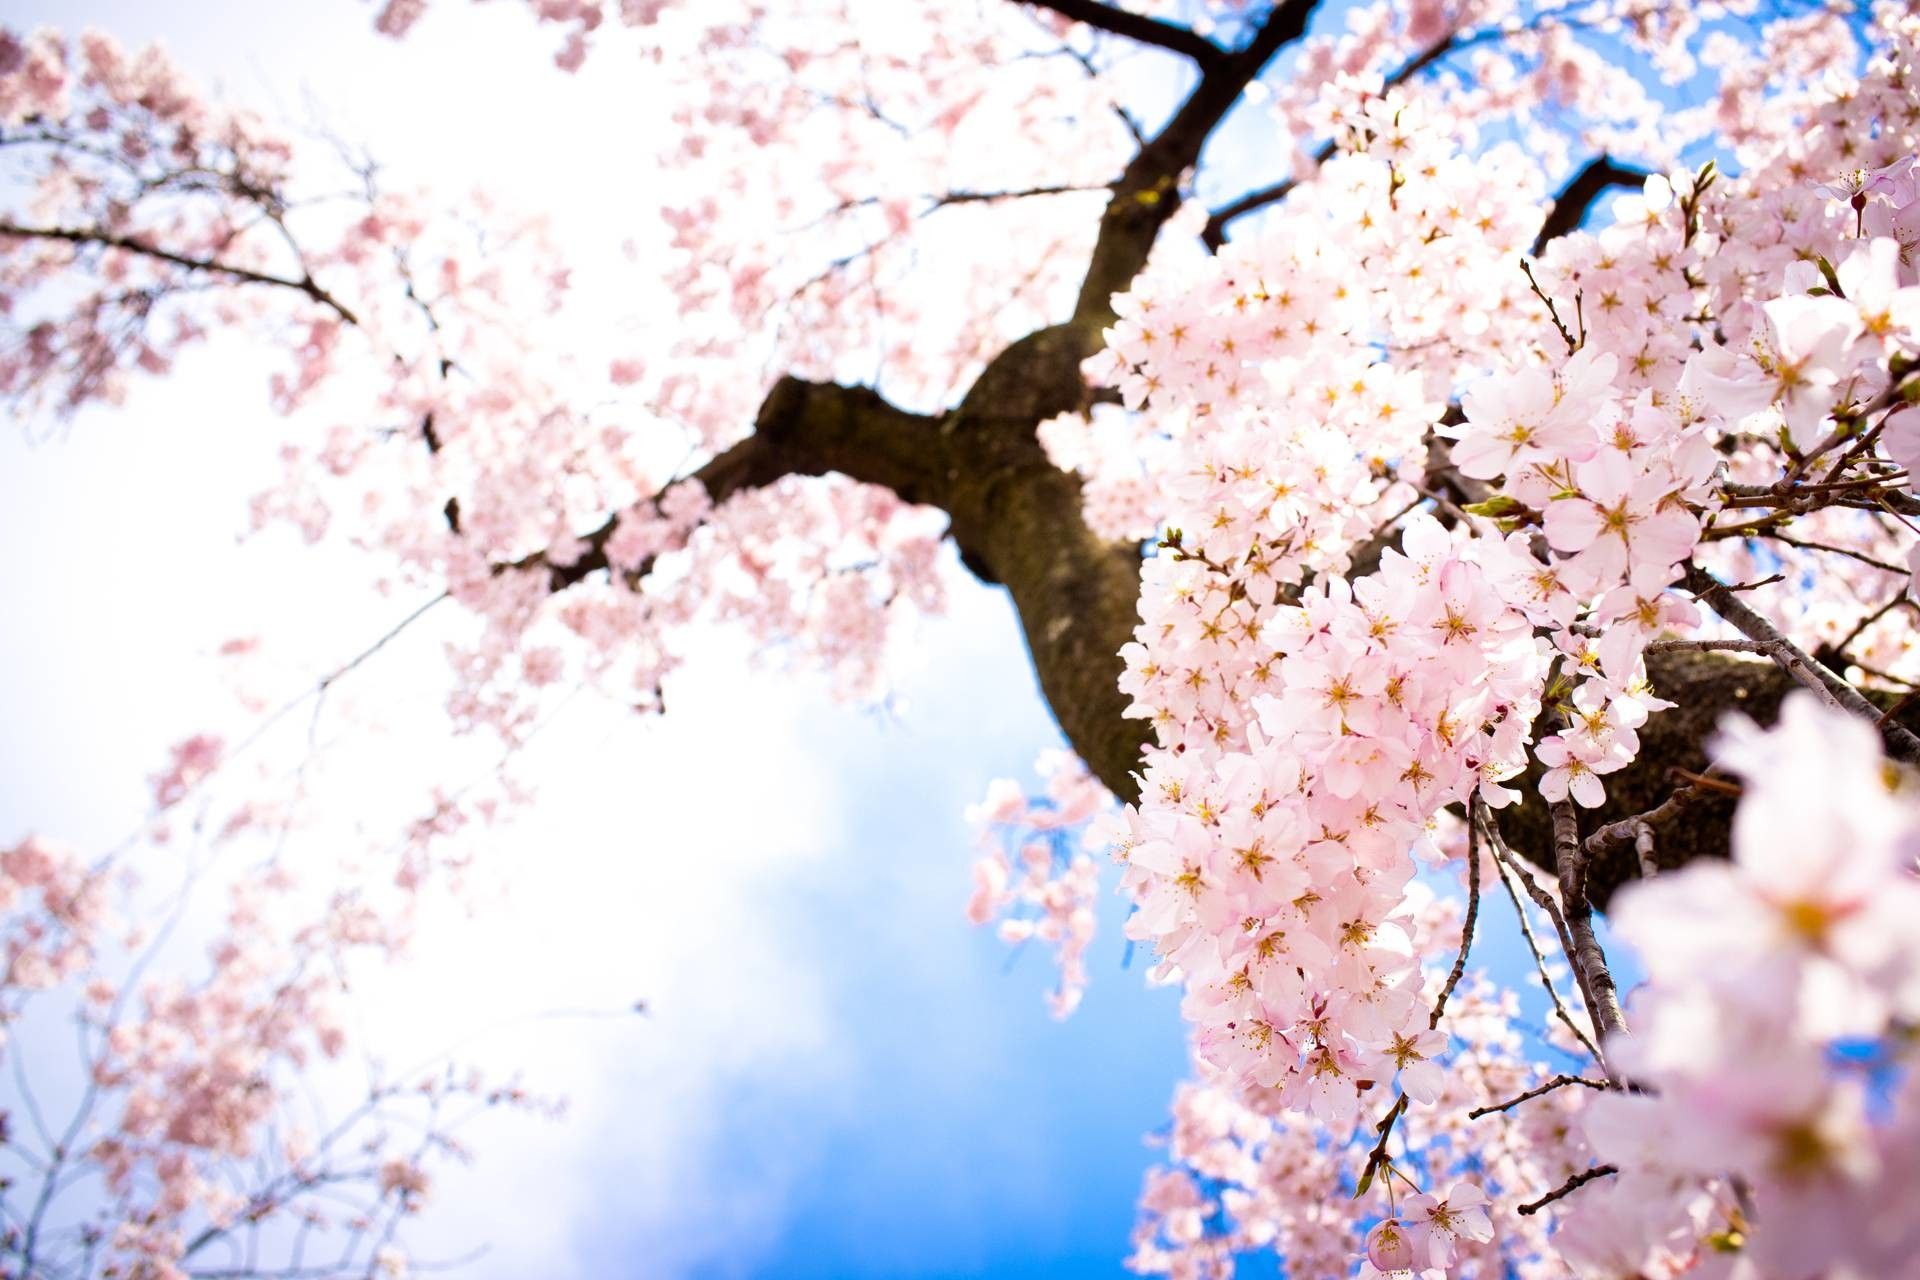 Cherry Blossom Tree, Flowers Wallpaper, hd phone wallpapers .